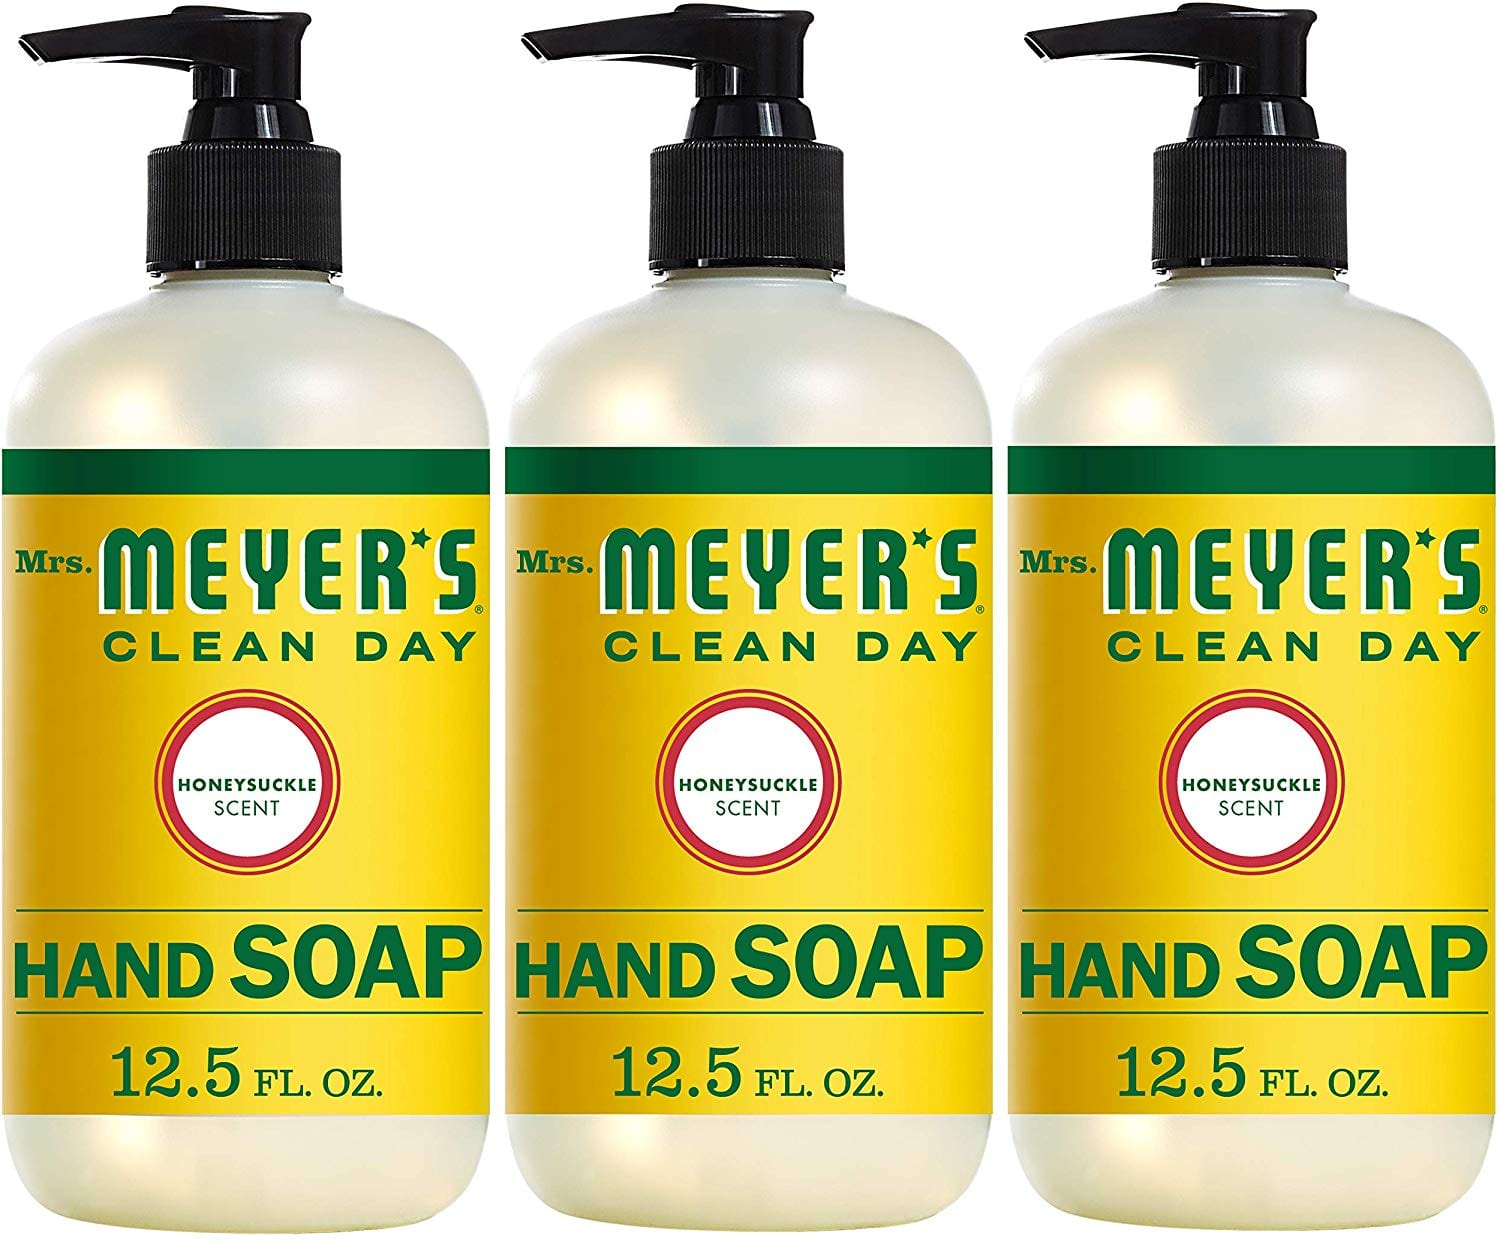 3-Pack 12.5oz Mrs. Meyer´s Clean Day Hand Soap (Honeysuckle) $8.38 w/ S&S + Free S&H